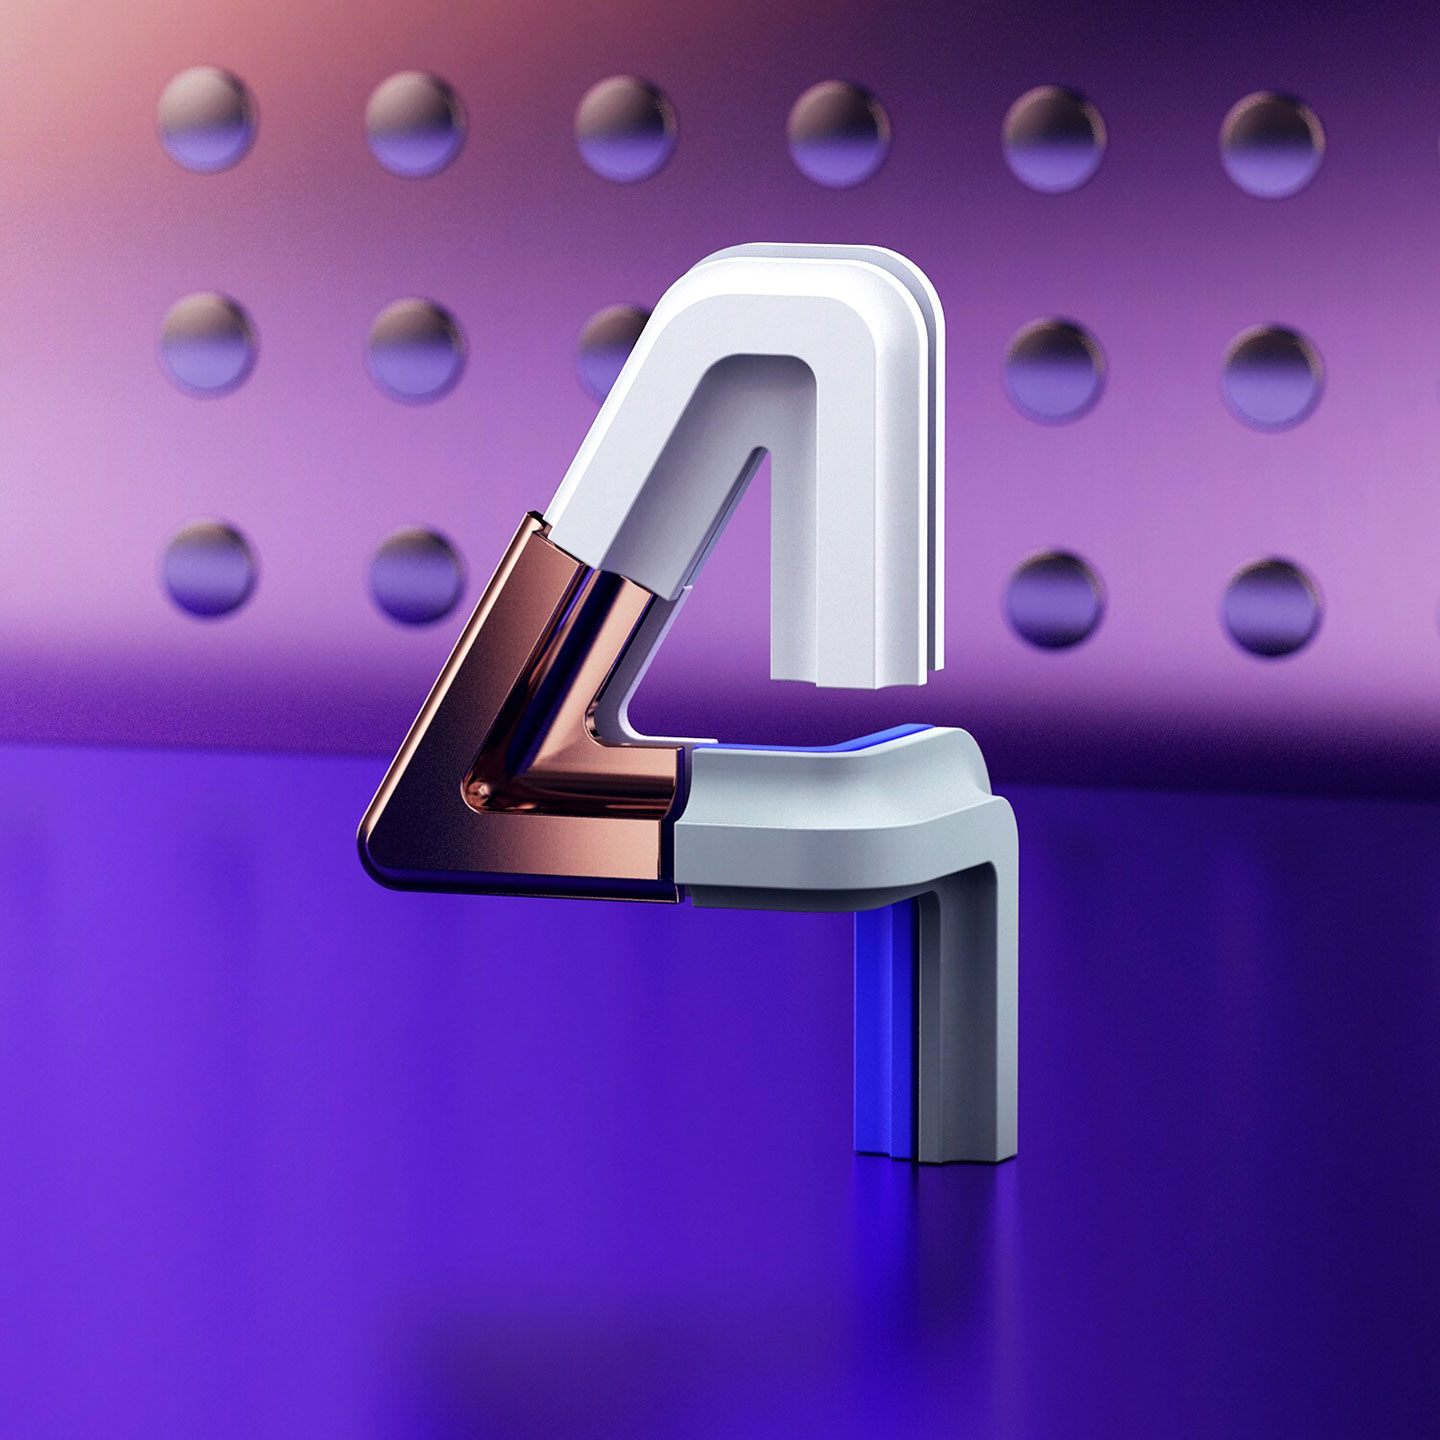 36 Days of Type 2017 - 3D number 4 design visual.